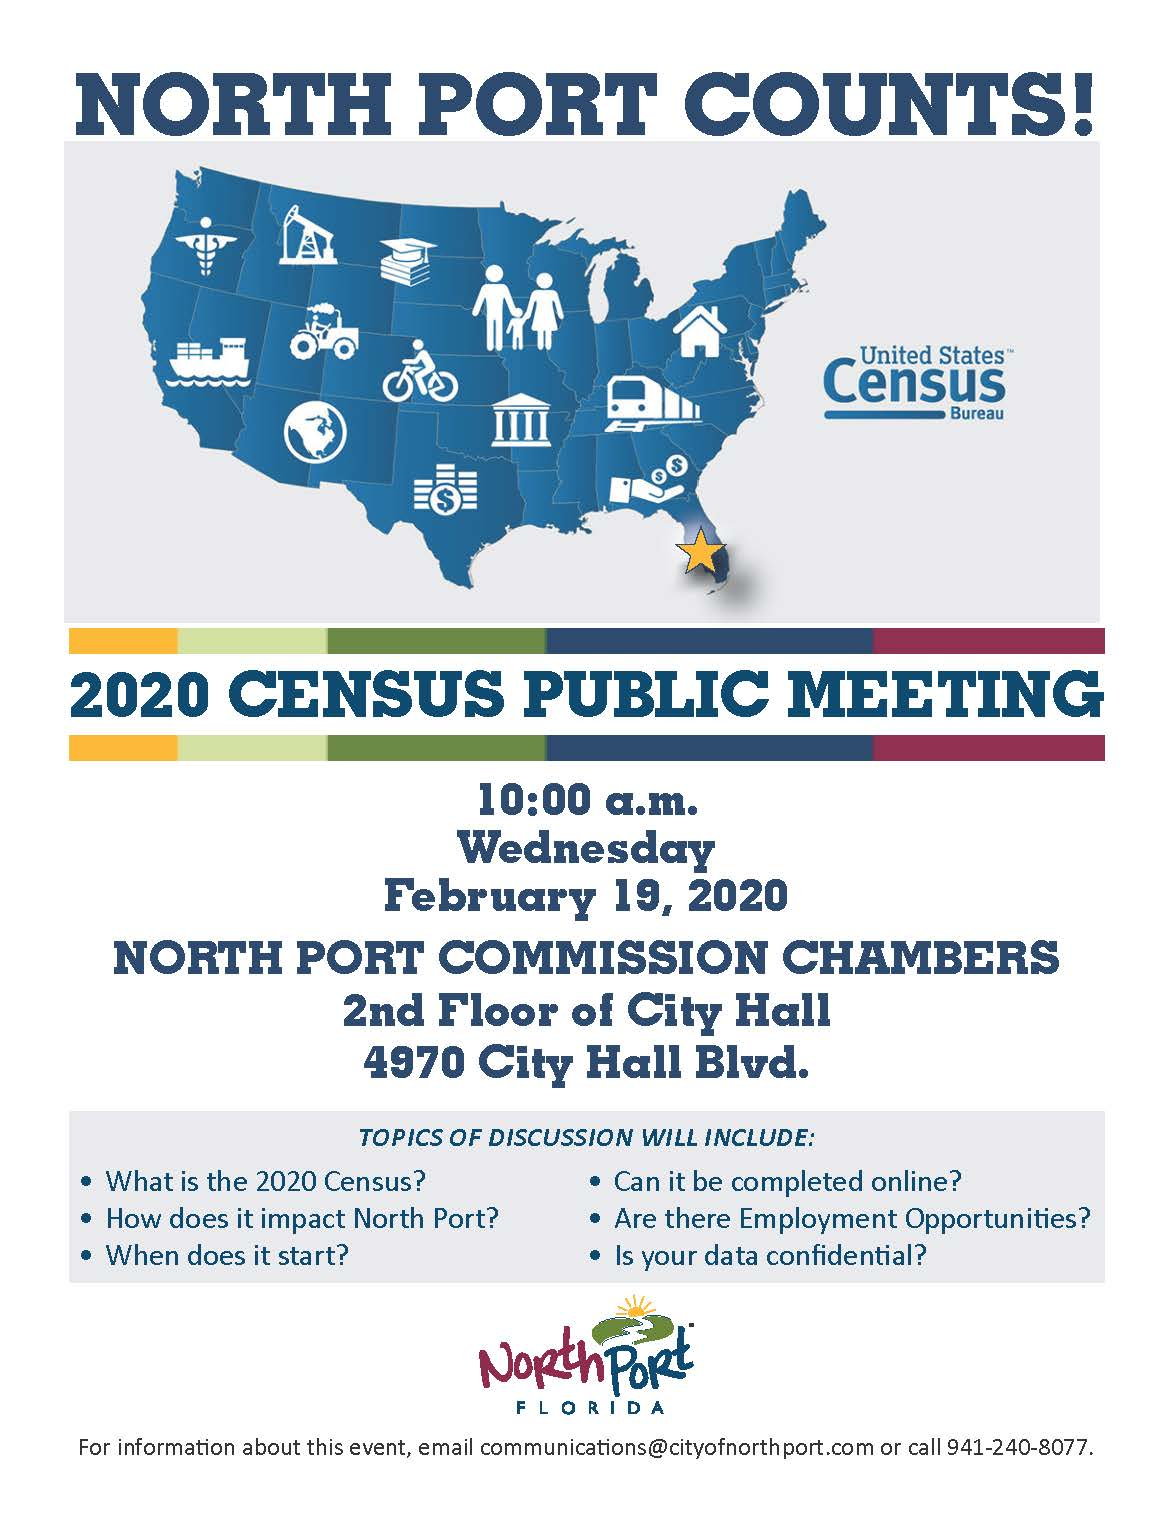 2020 Census Public Meeting on February 19, 2020 Flyer